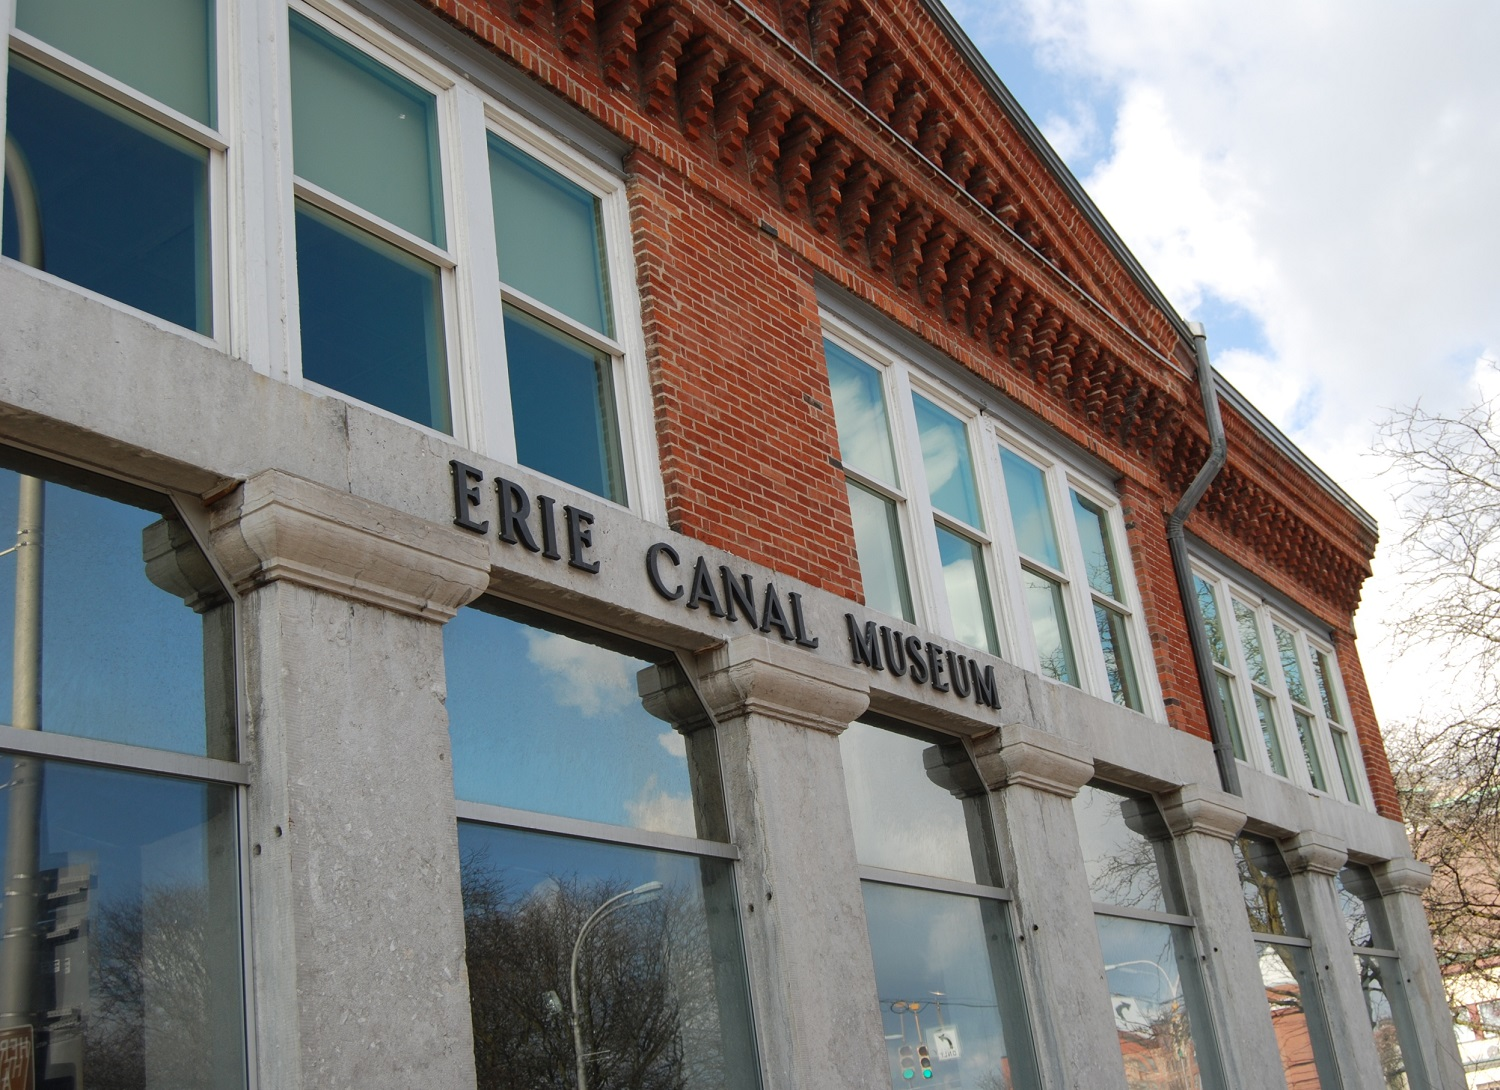 Exterior shot of a red brick and concrete building with Erie Canal Museum in writing on the front.